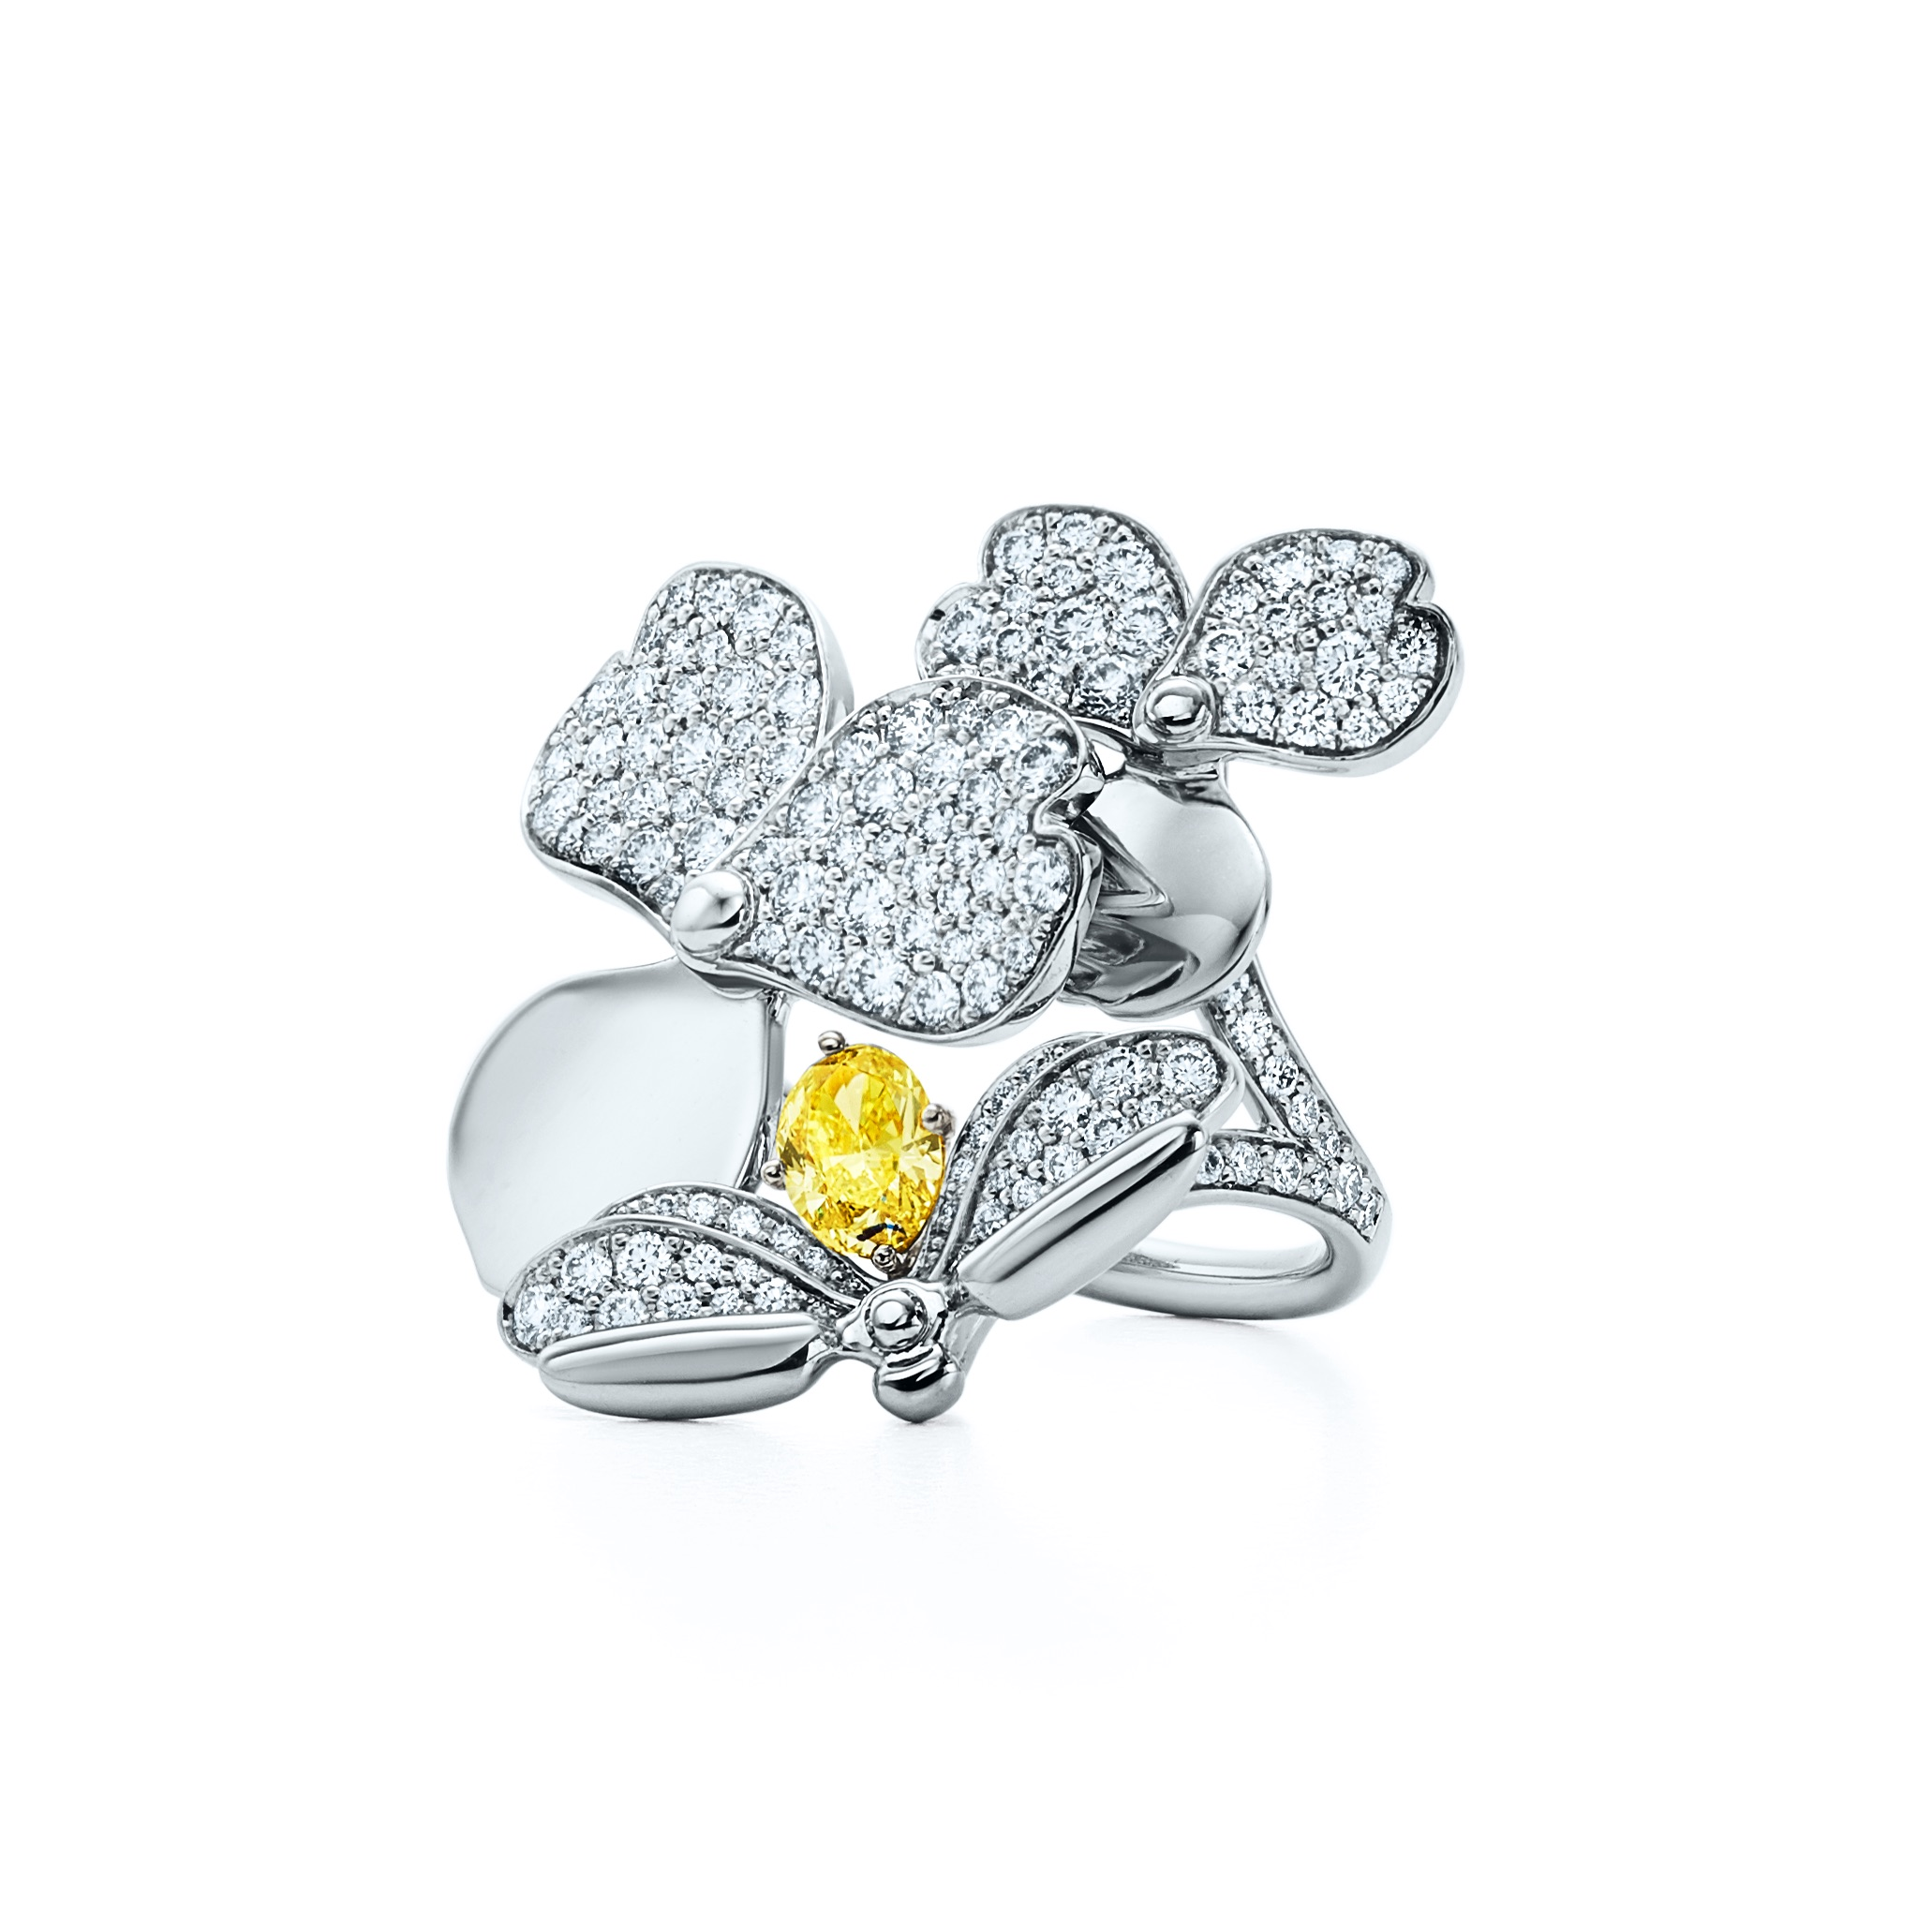 TPF Firefly ring in platinum with white diamonds and a yellow diamond